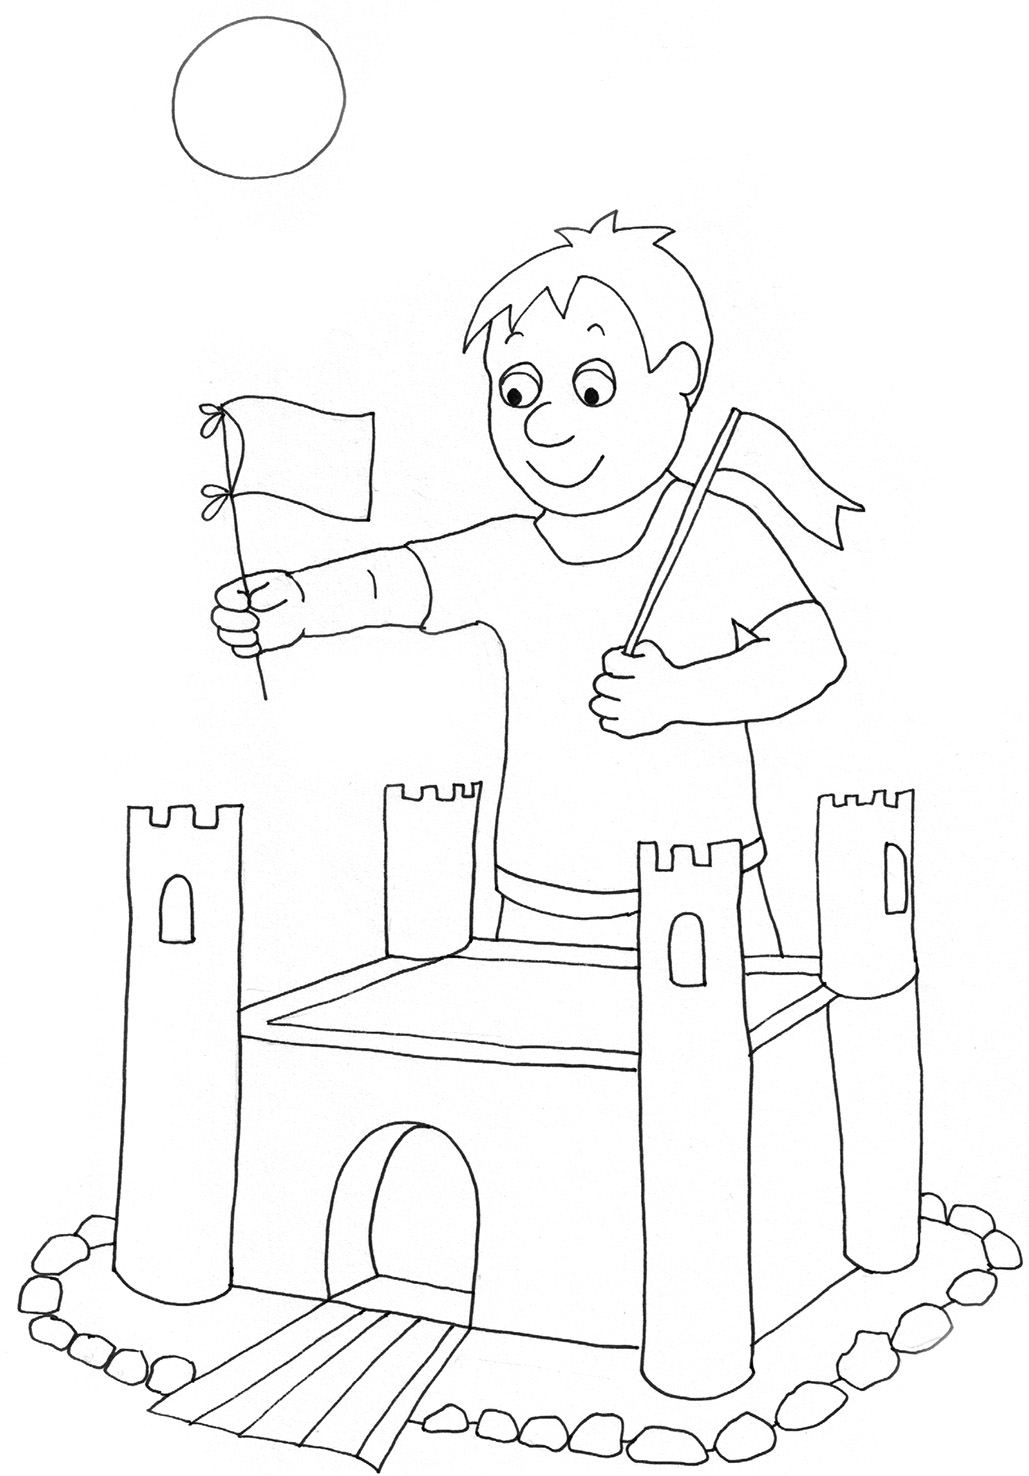 Printable coloring pages sand castle -  Summer Coloring Sheet Boy Sandcastle